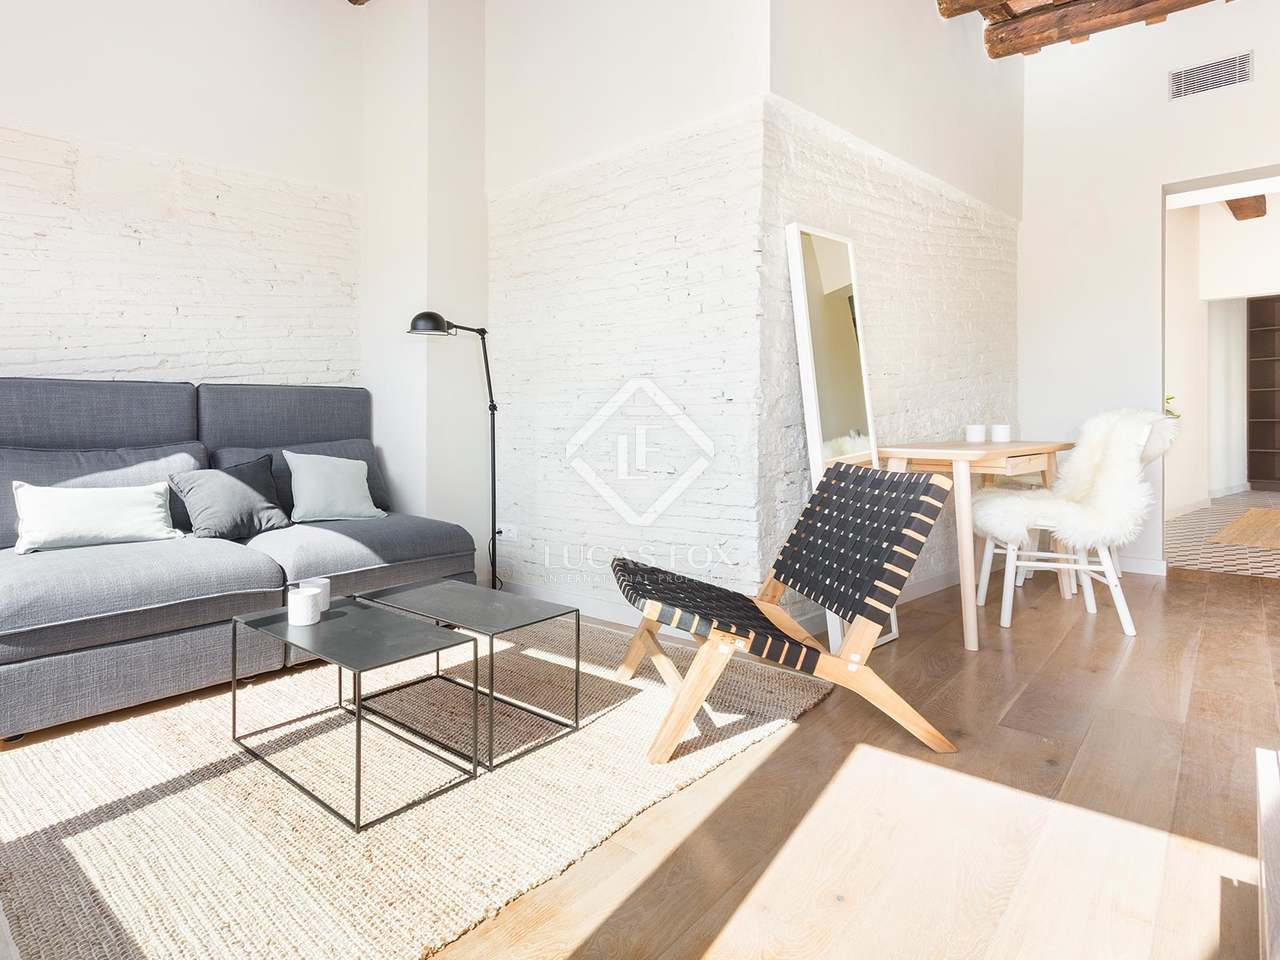 New Build 1 Bedroom Apartment For Sale In Barcelona Old Town